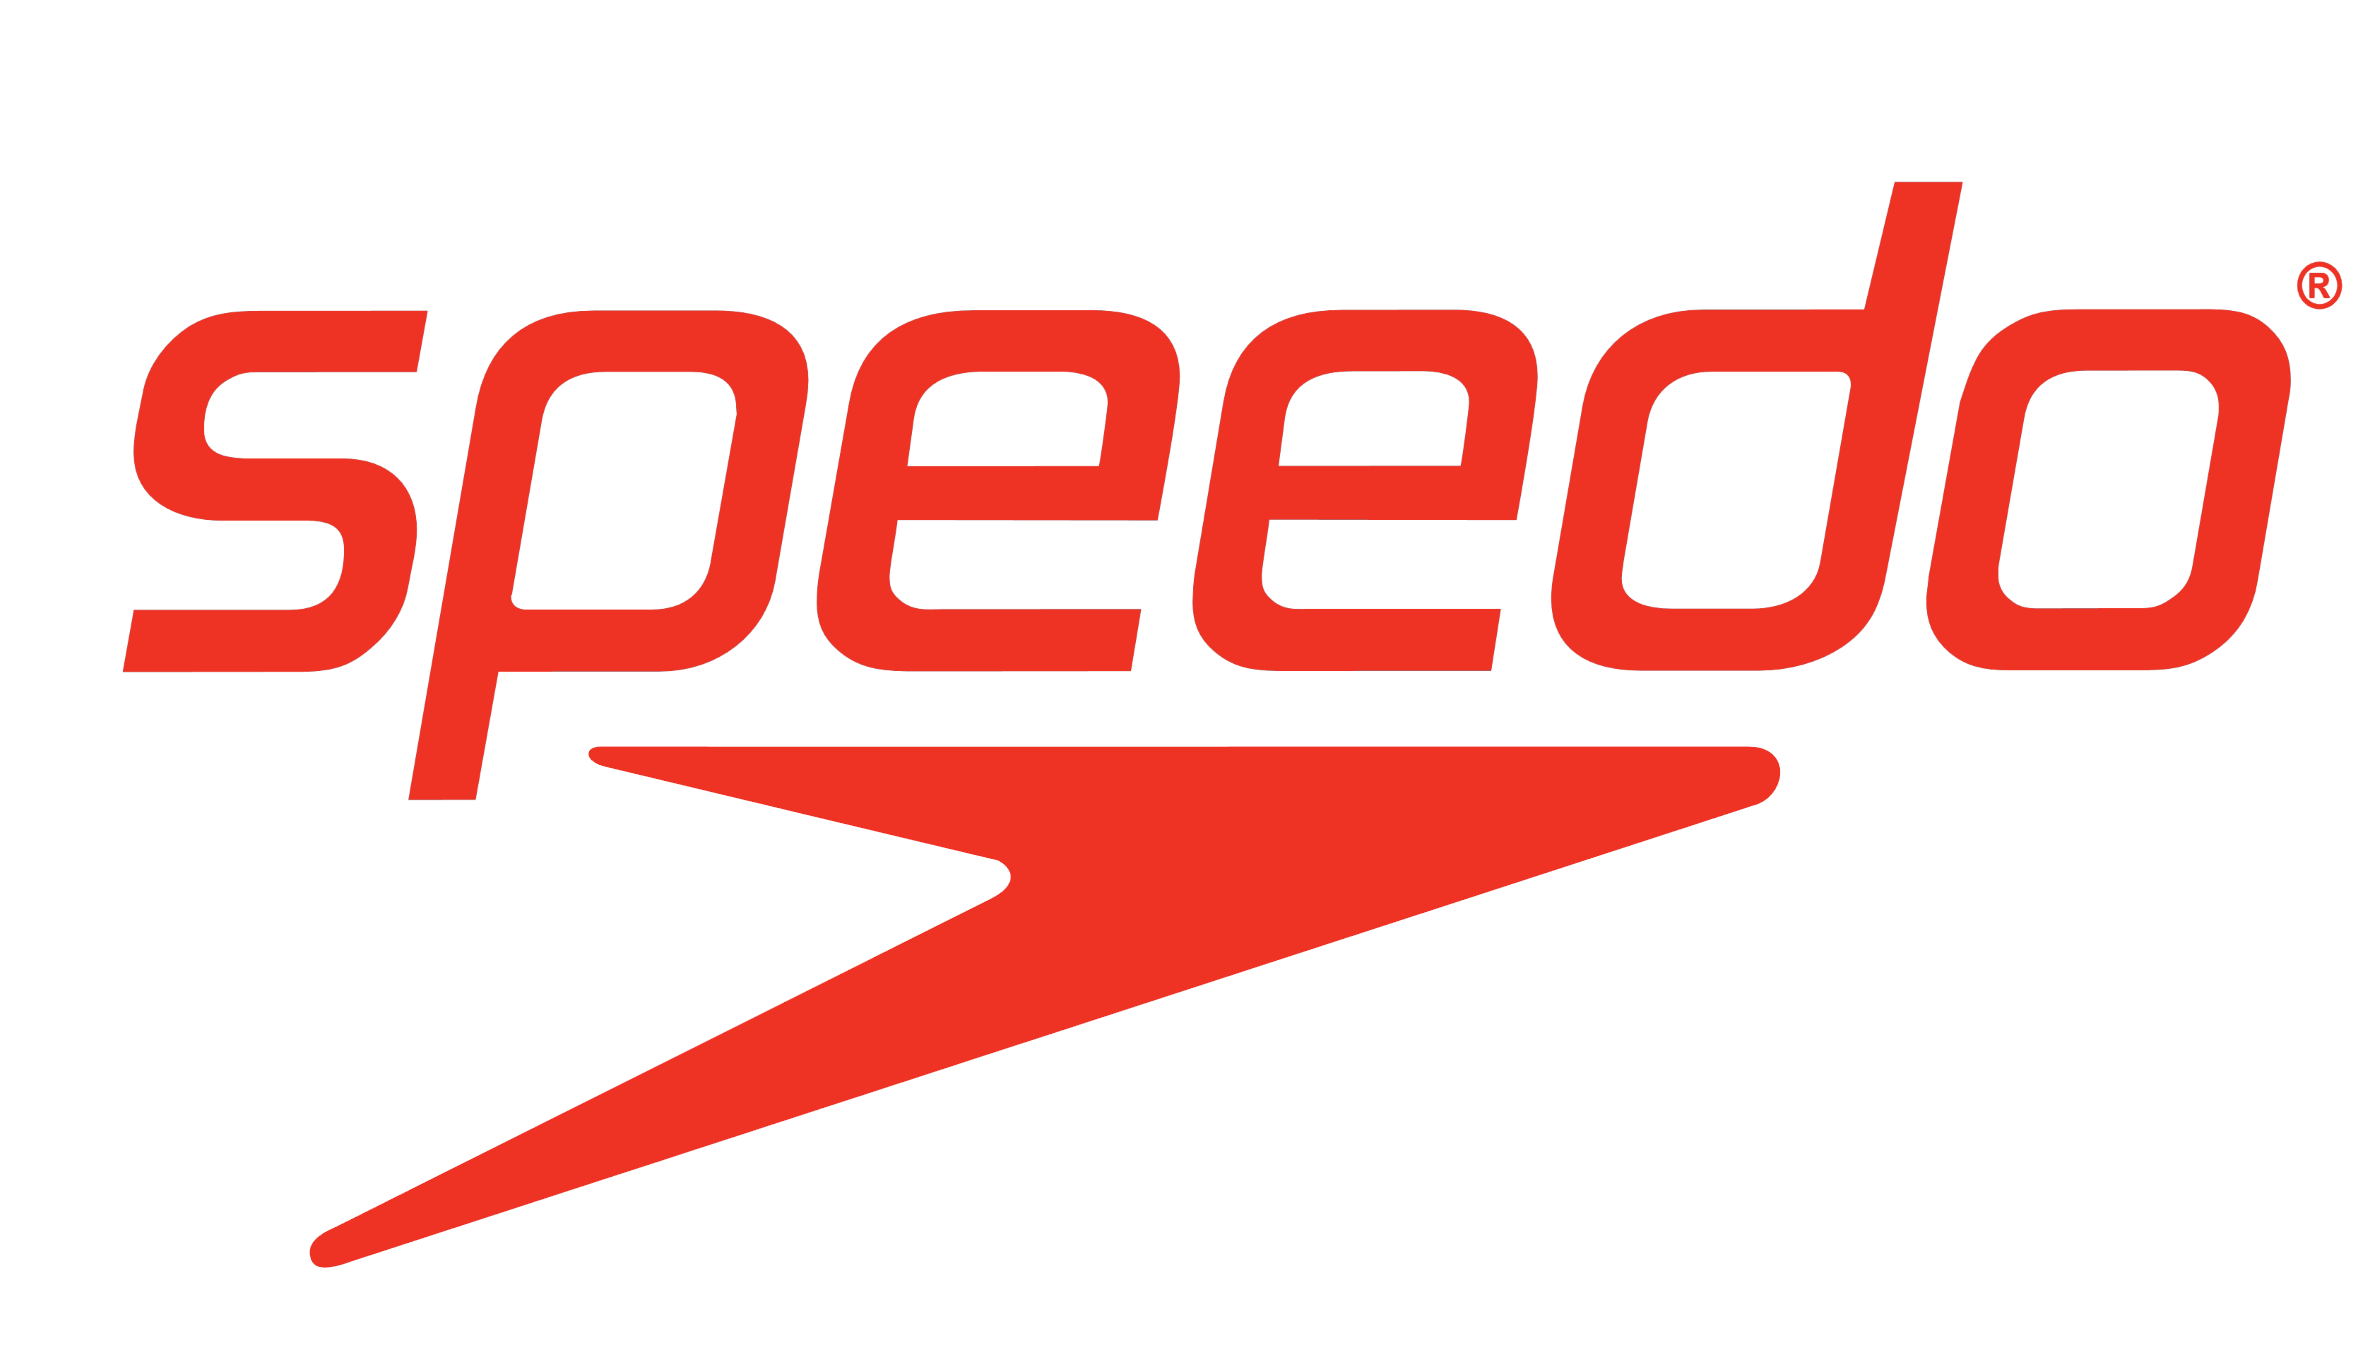 Speedo logotype logo emblem symbol red 1